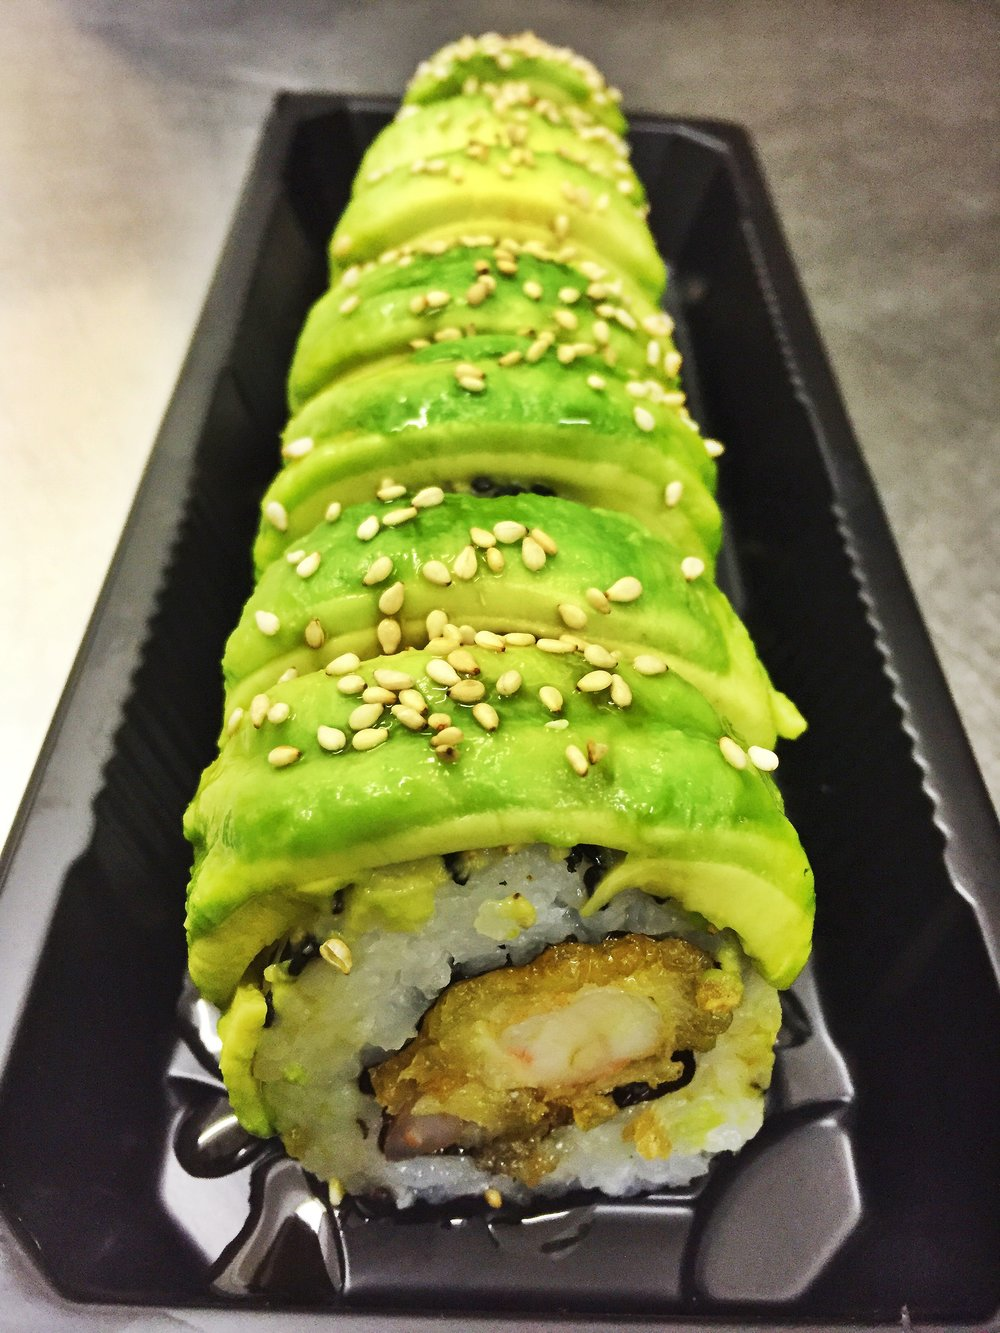 The Caterillar Roll - £6.50